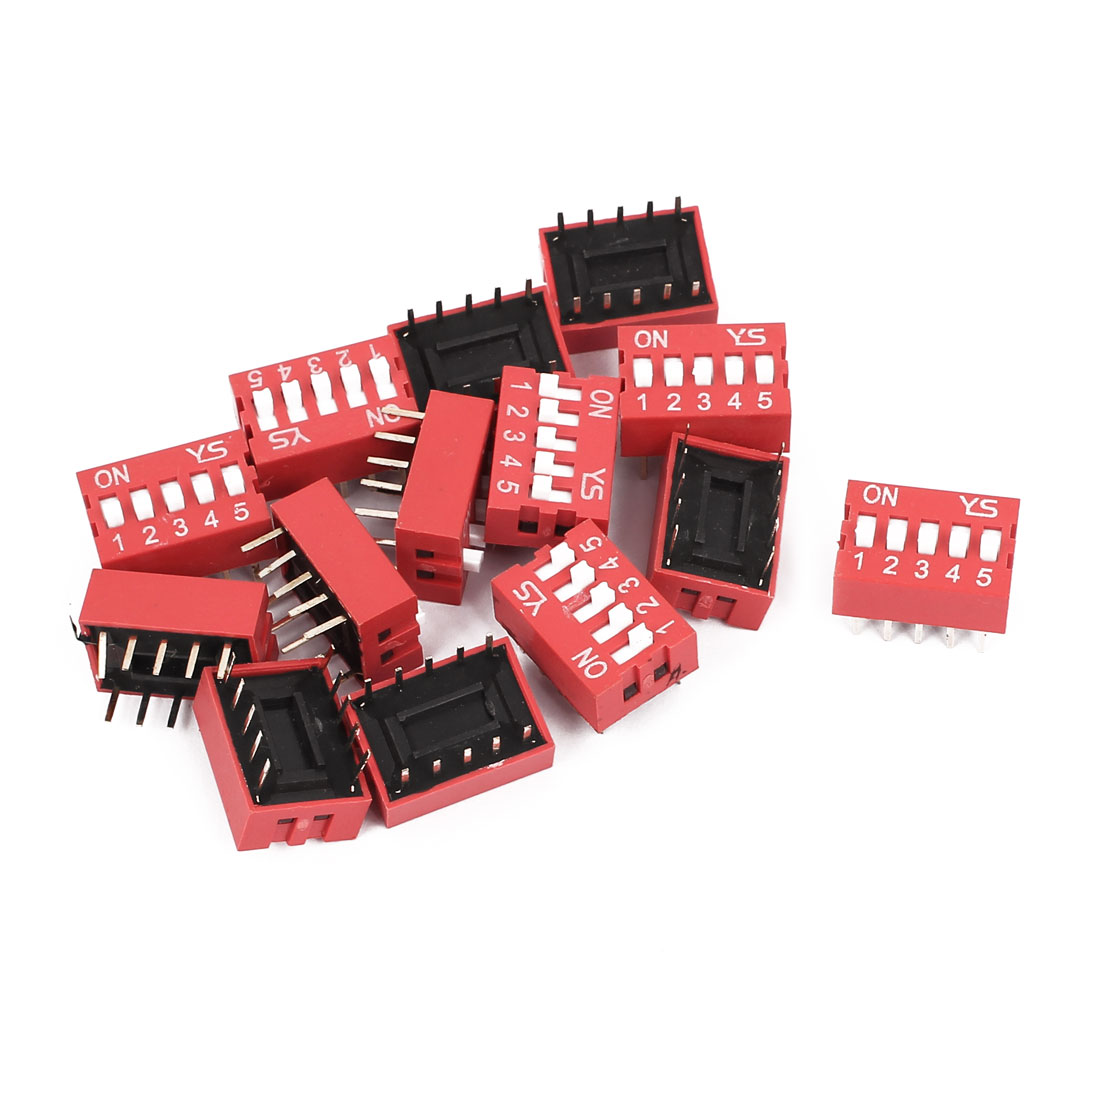 14 Pcs DIP Switch 2 Row 10 Terminals 5 Positions Sliding Switch 2.54mm Pitch